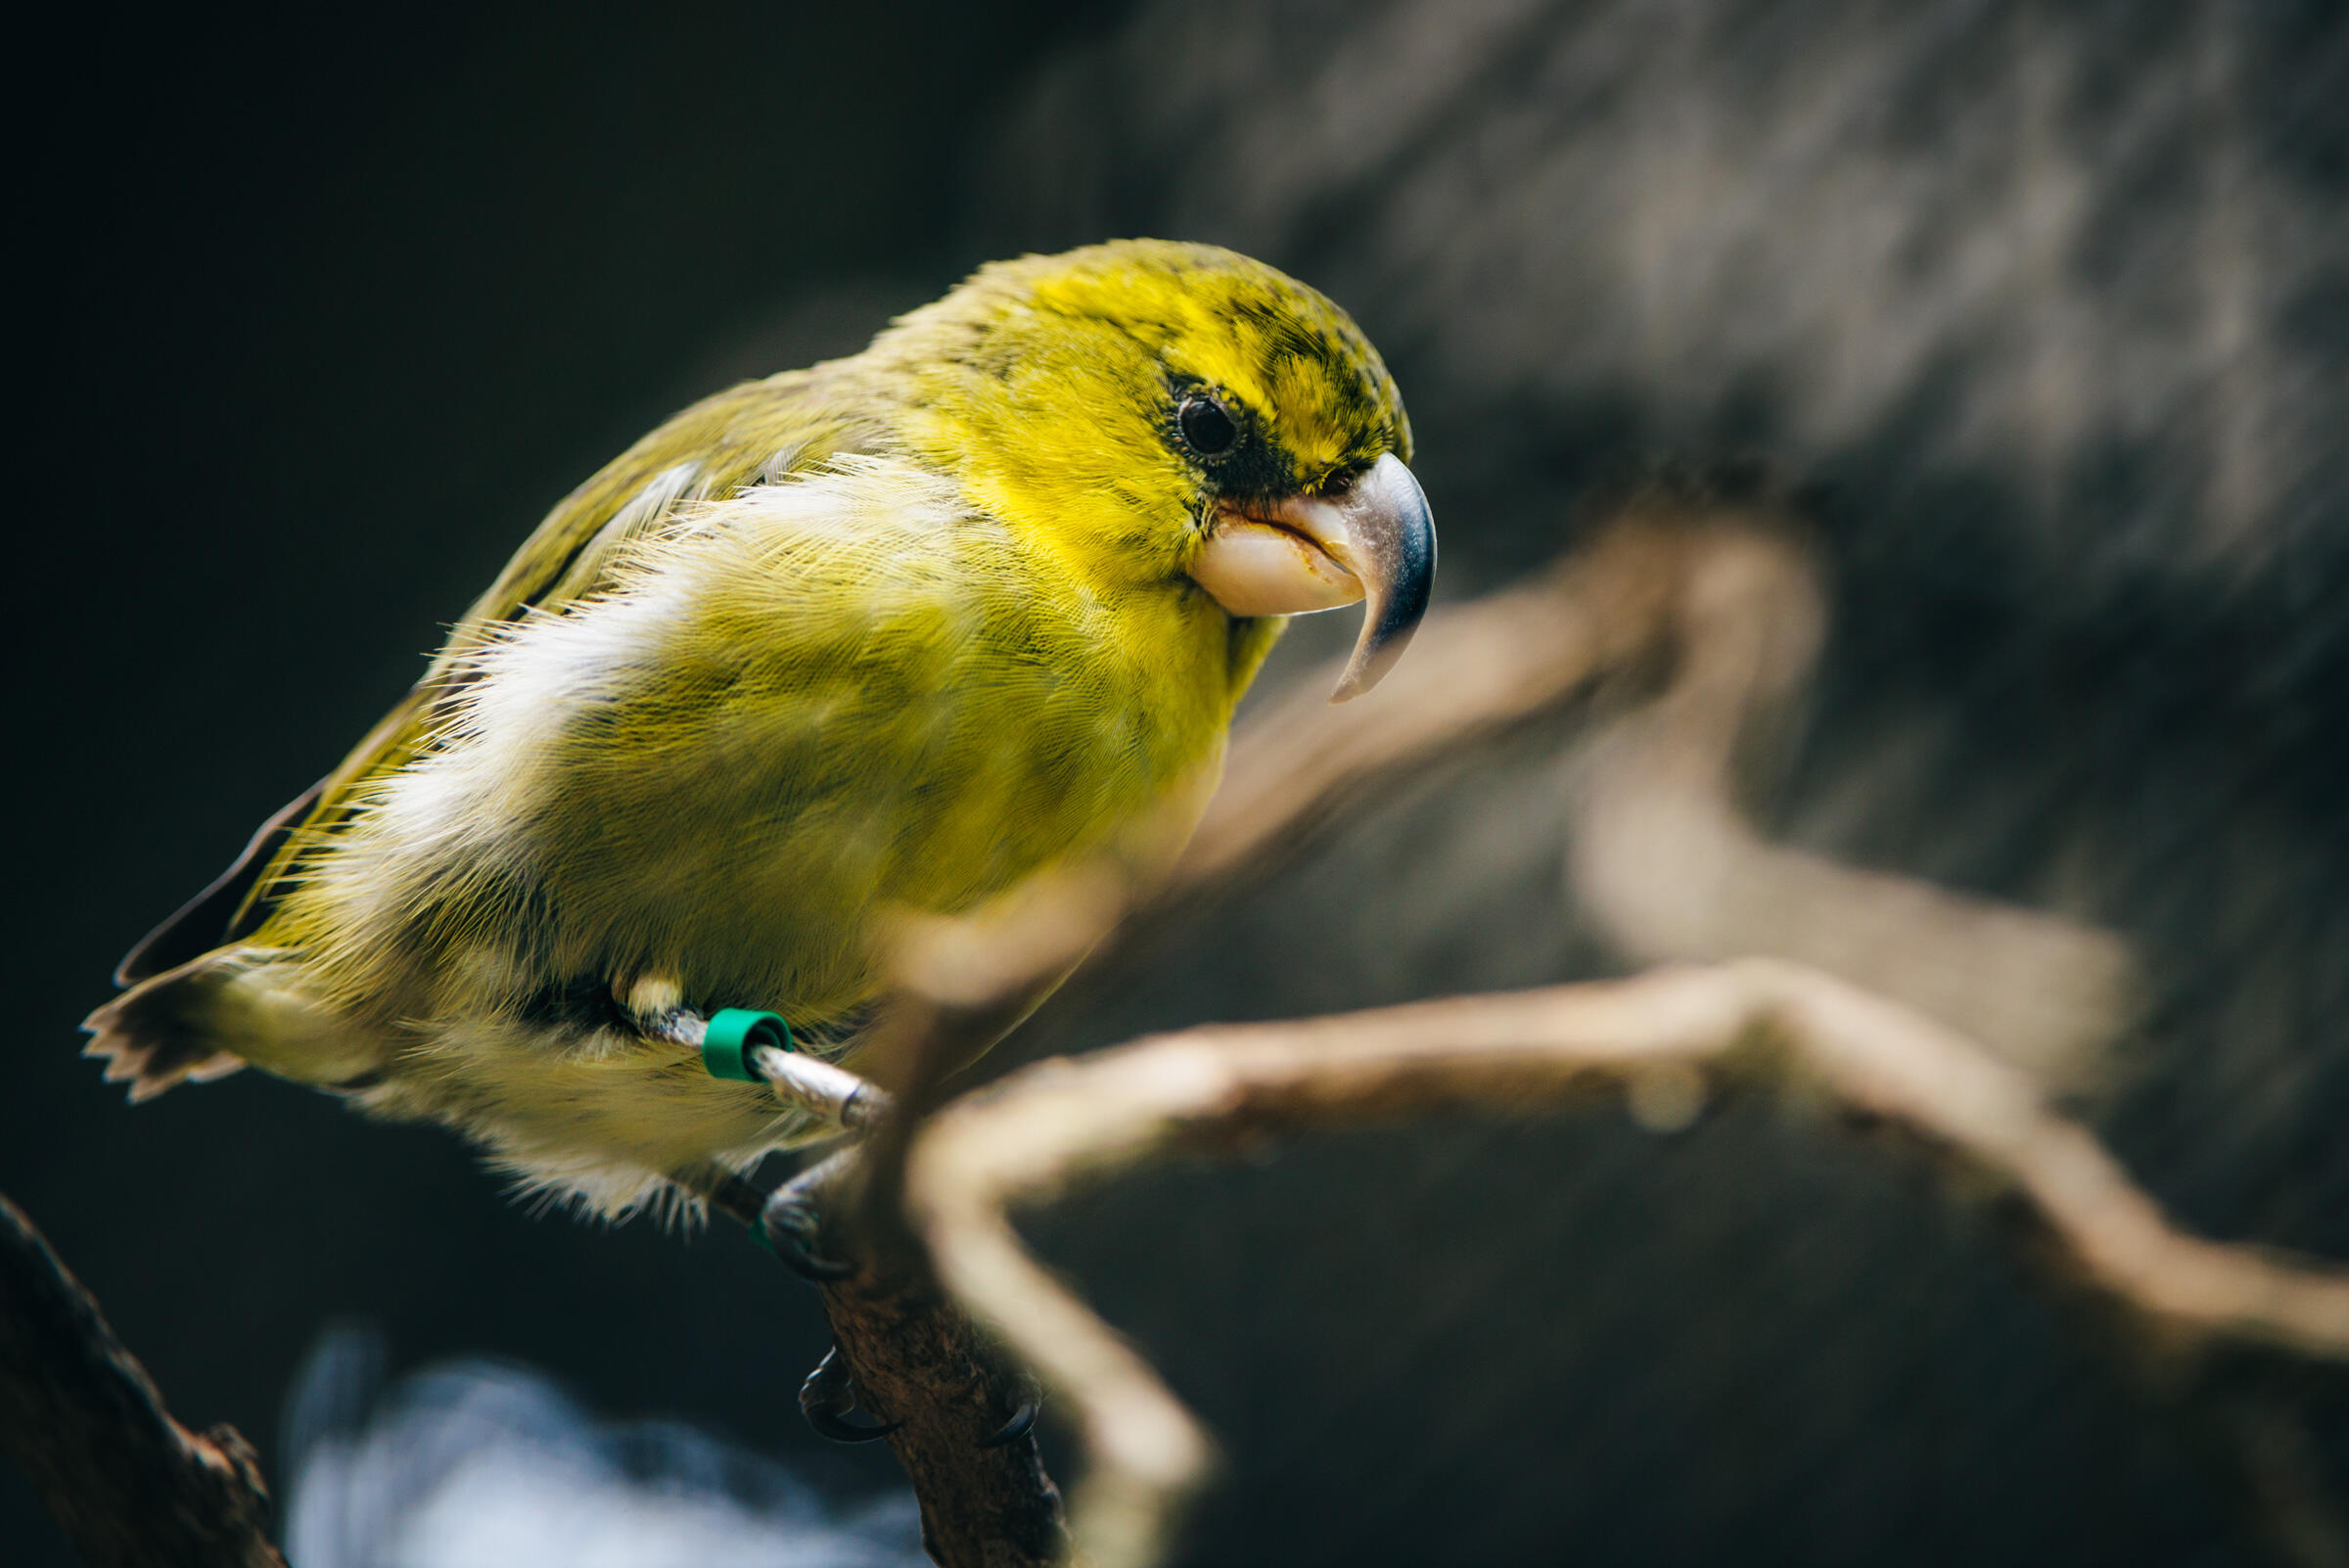 A captive Maui Parrotbill (or Kiwikiu) at the Maui Bird Conservation Center. The plan is to introduce hatchlings from the center to the new habitat, where they'll join wild birds. Ken Etzel